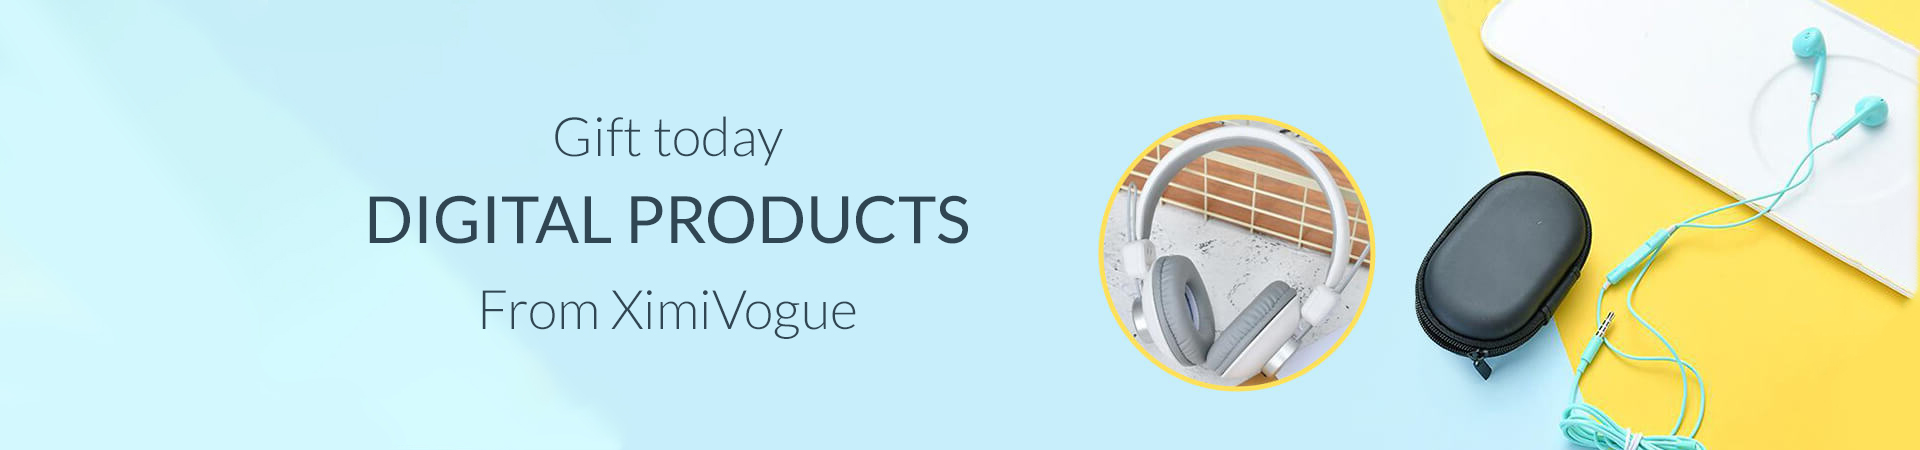 ximivogue digital products